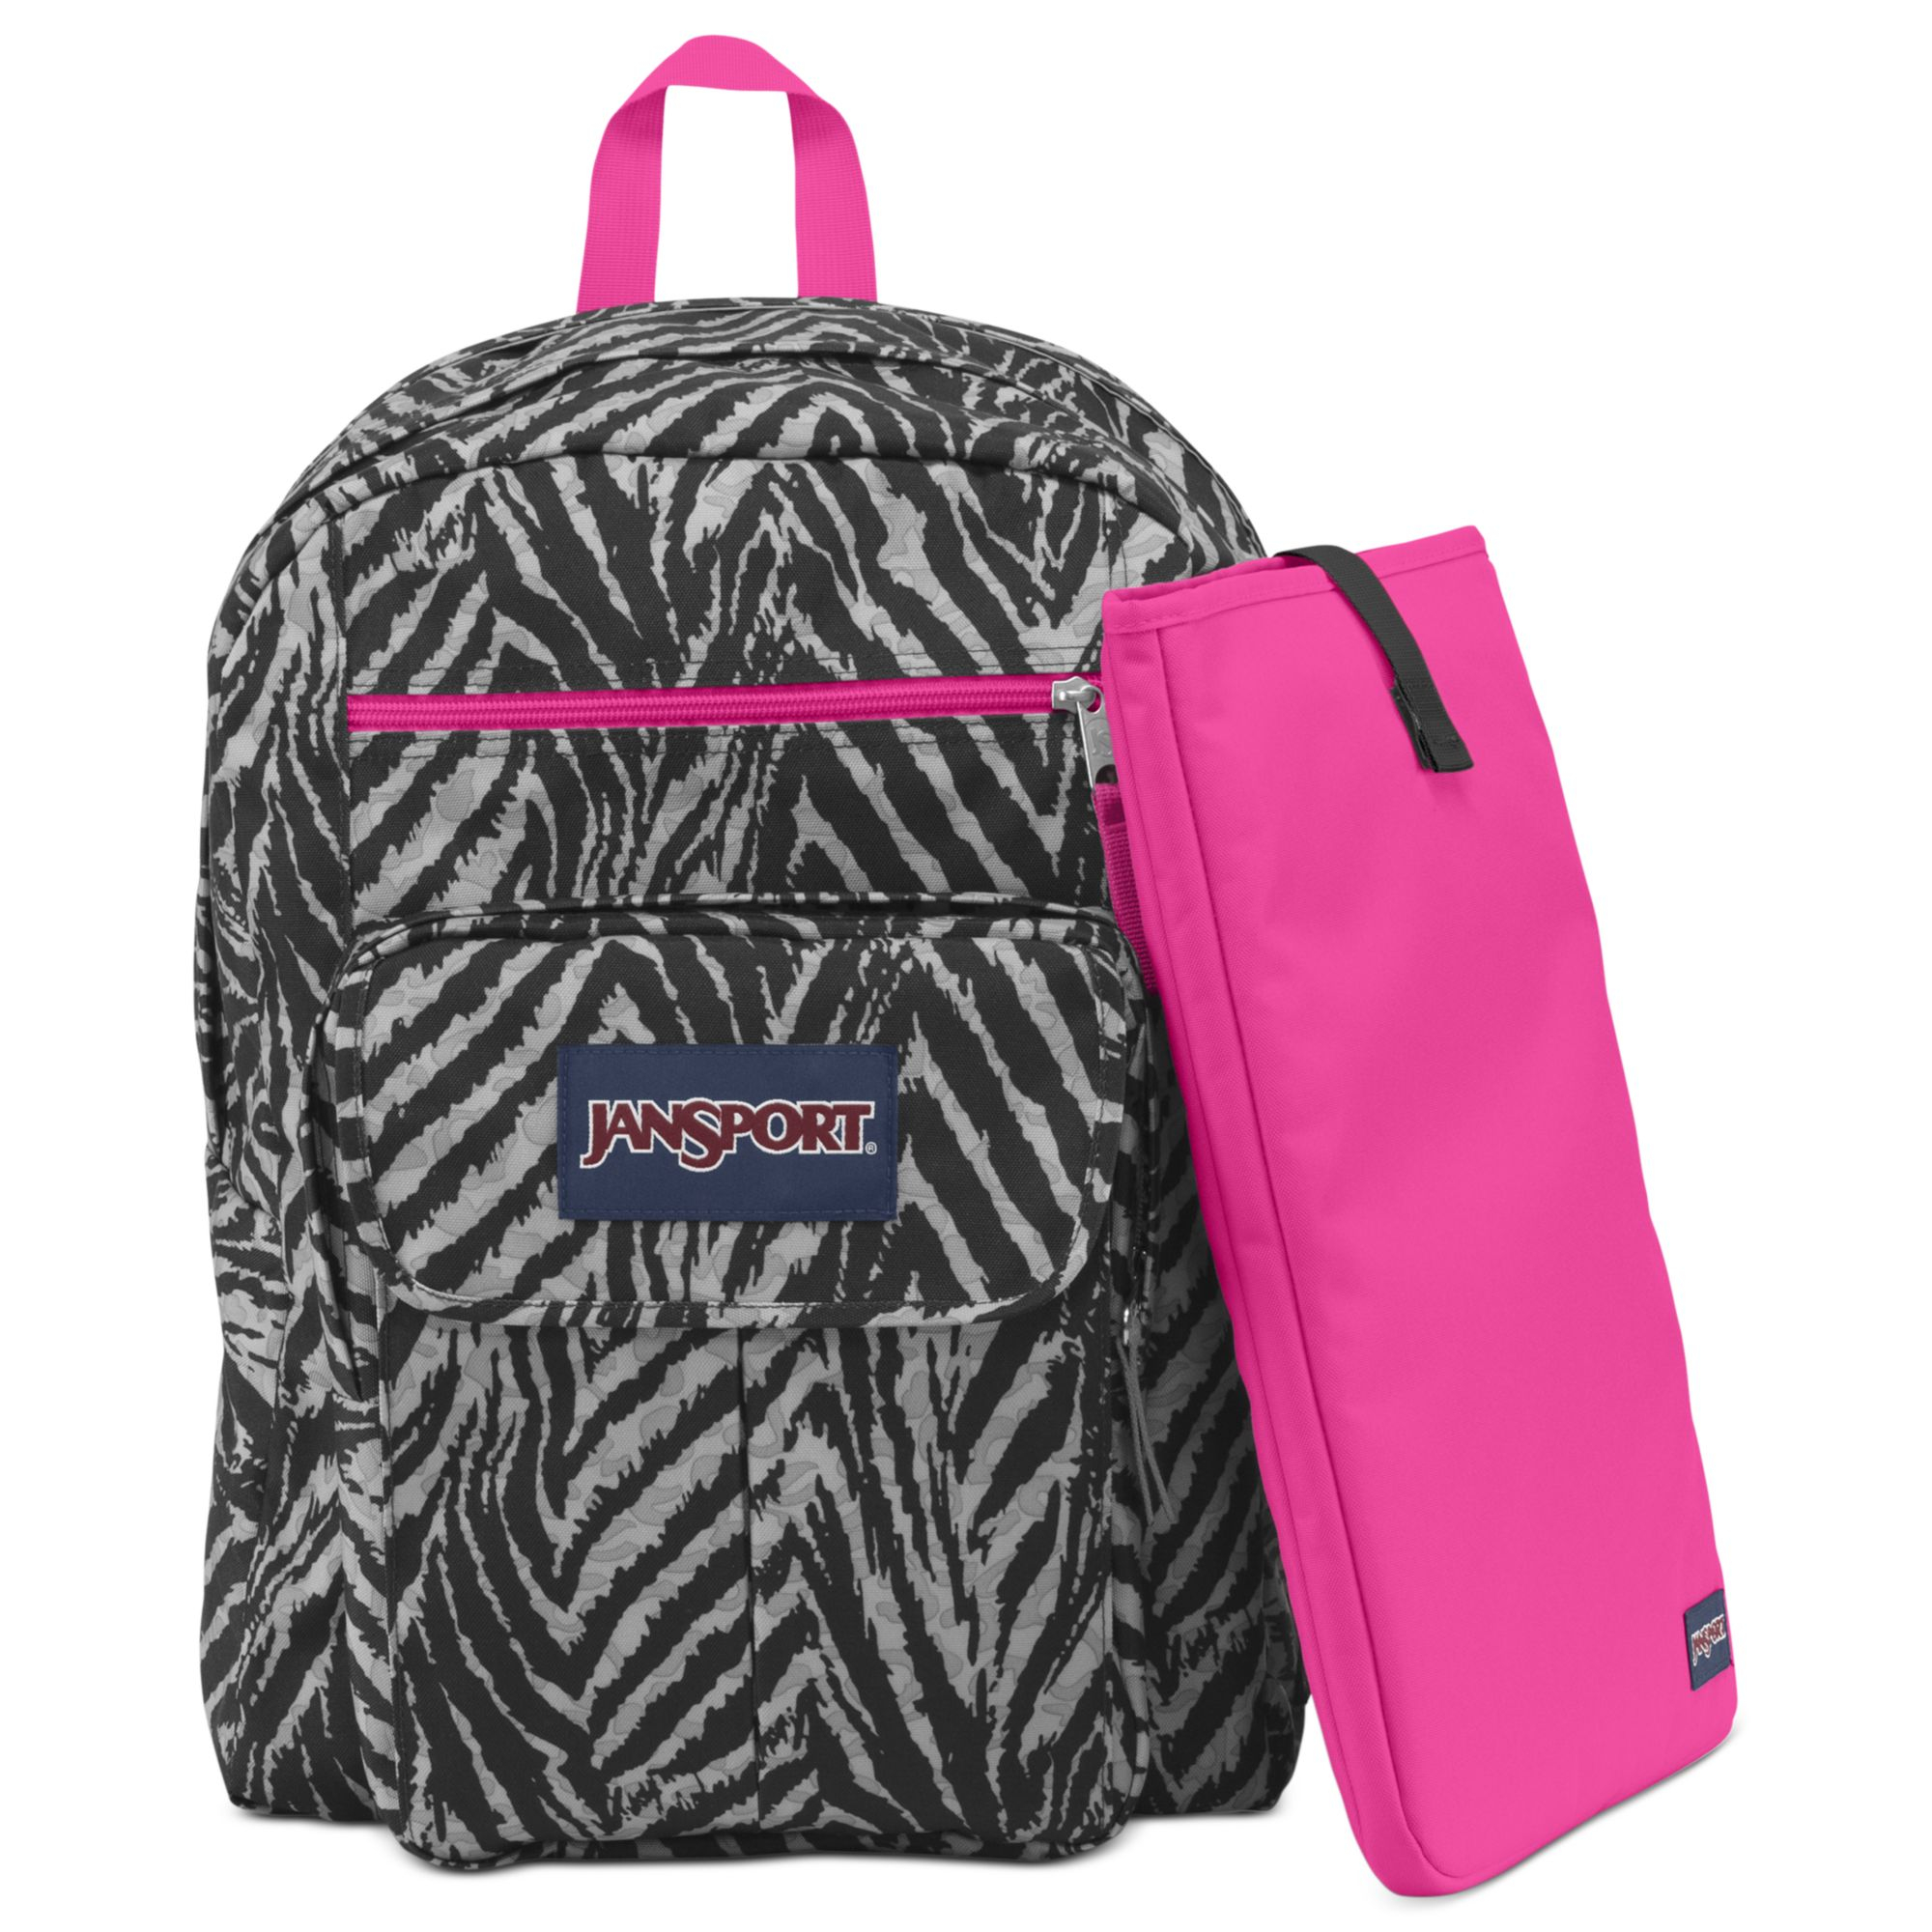 Jansport Backpacks Sale EevRqF9N